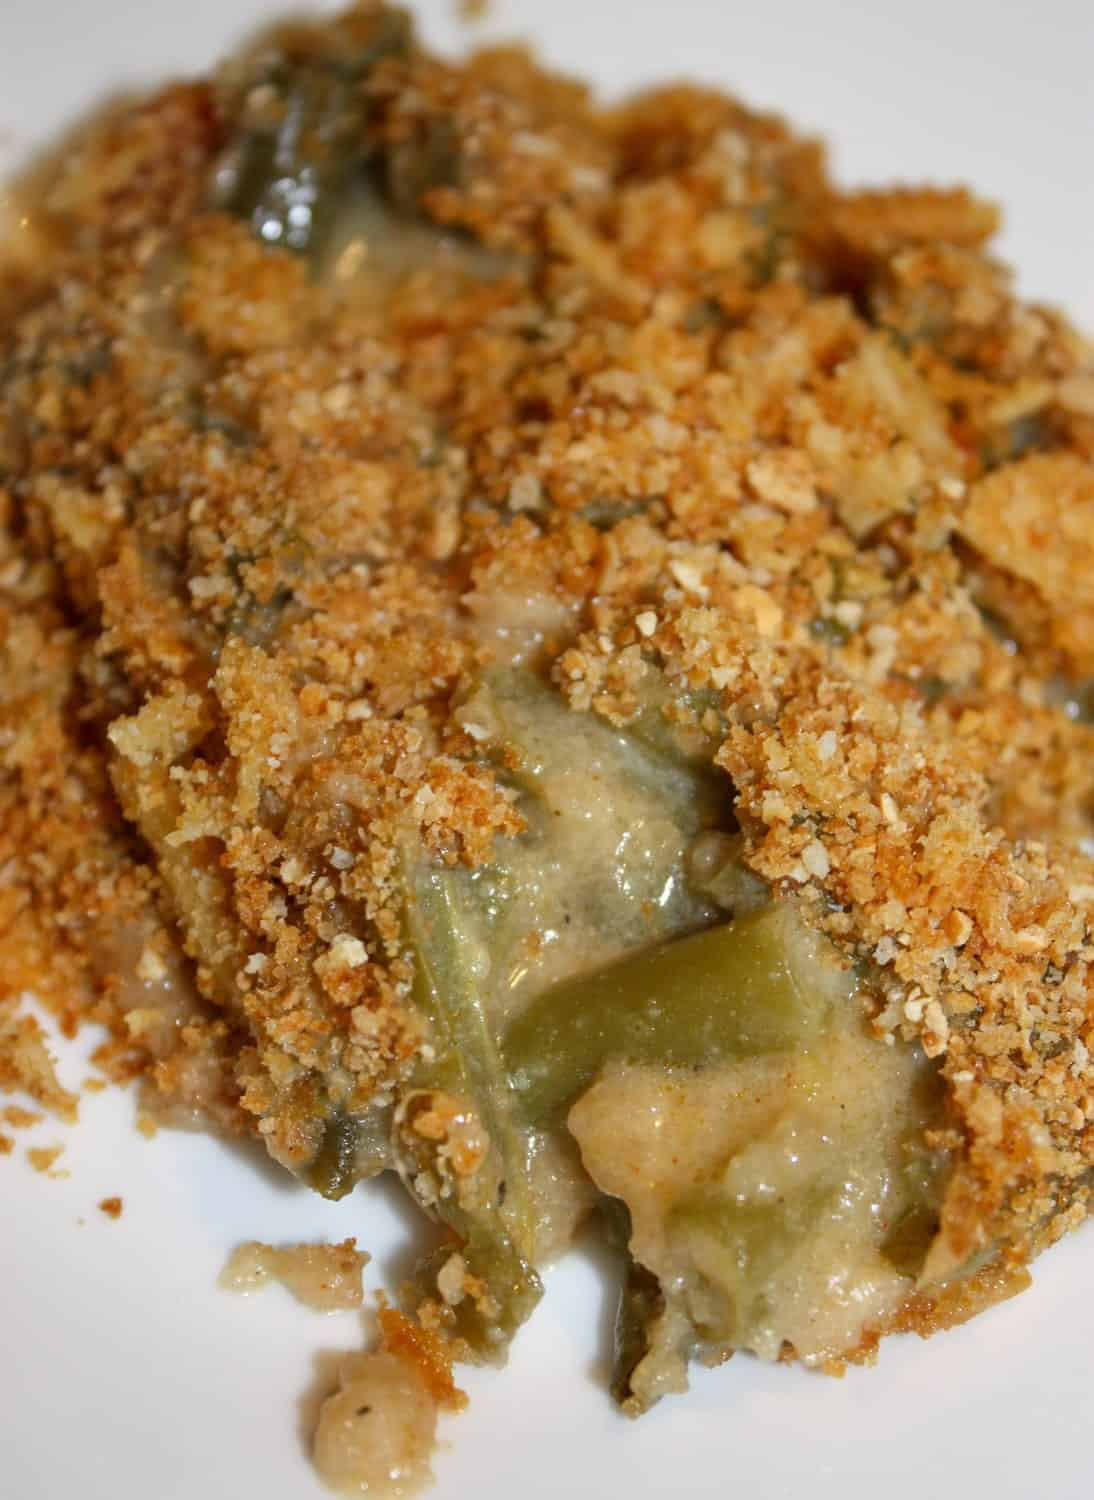 Green Bean Casserole is a traditional side dish that is simple to make. So easy and delicious that you can serve it up any day of the week and not just at a holiday meal.